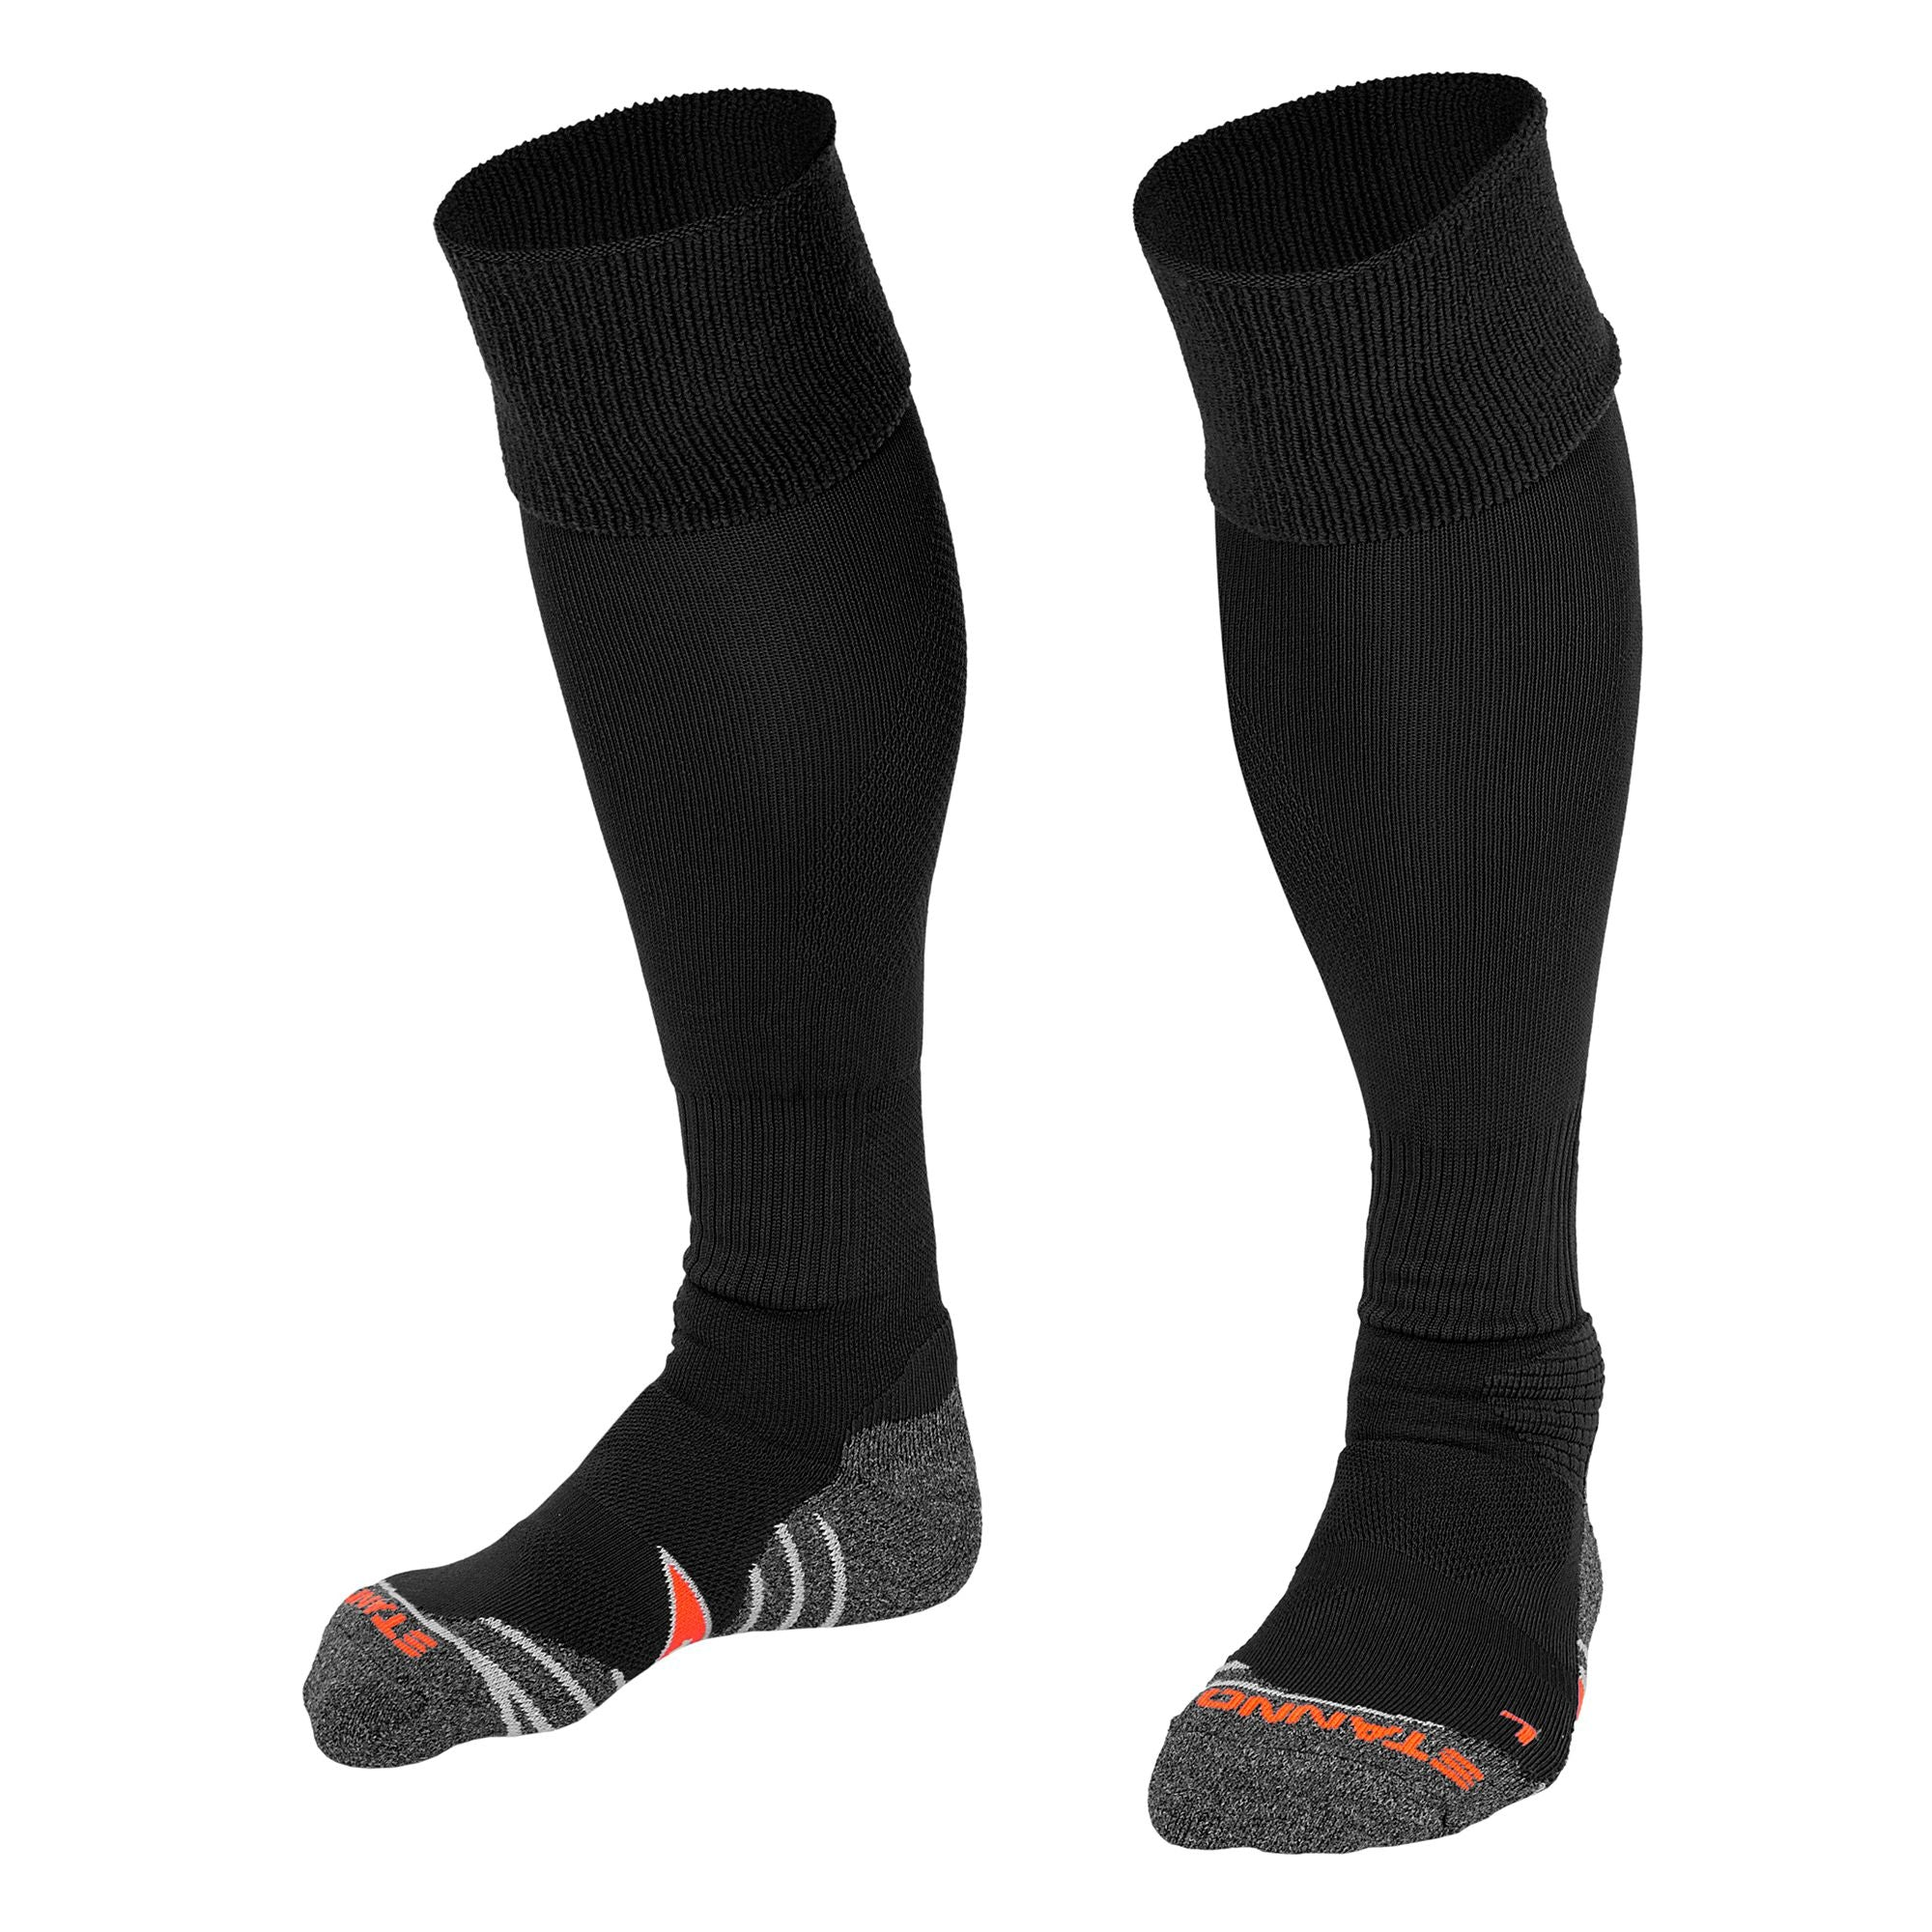 Stanno Uni Sock II football sock in black with grey, white and orange sole